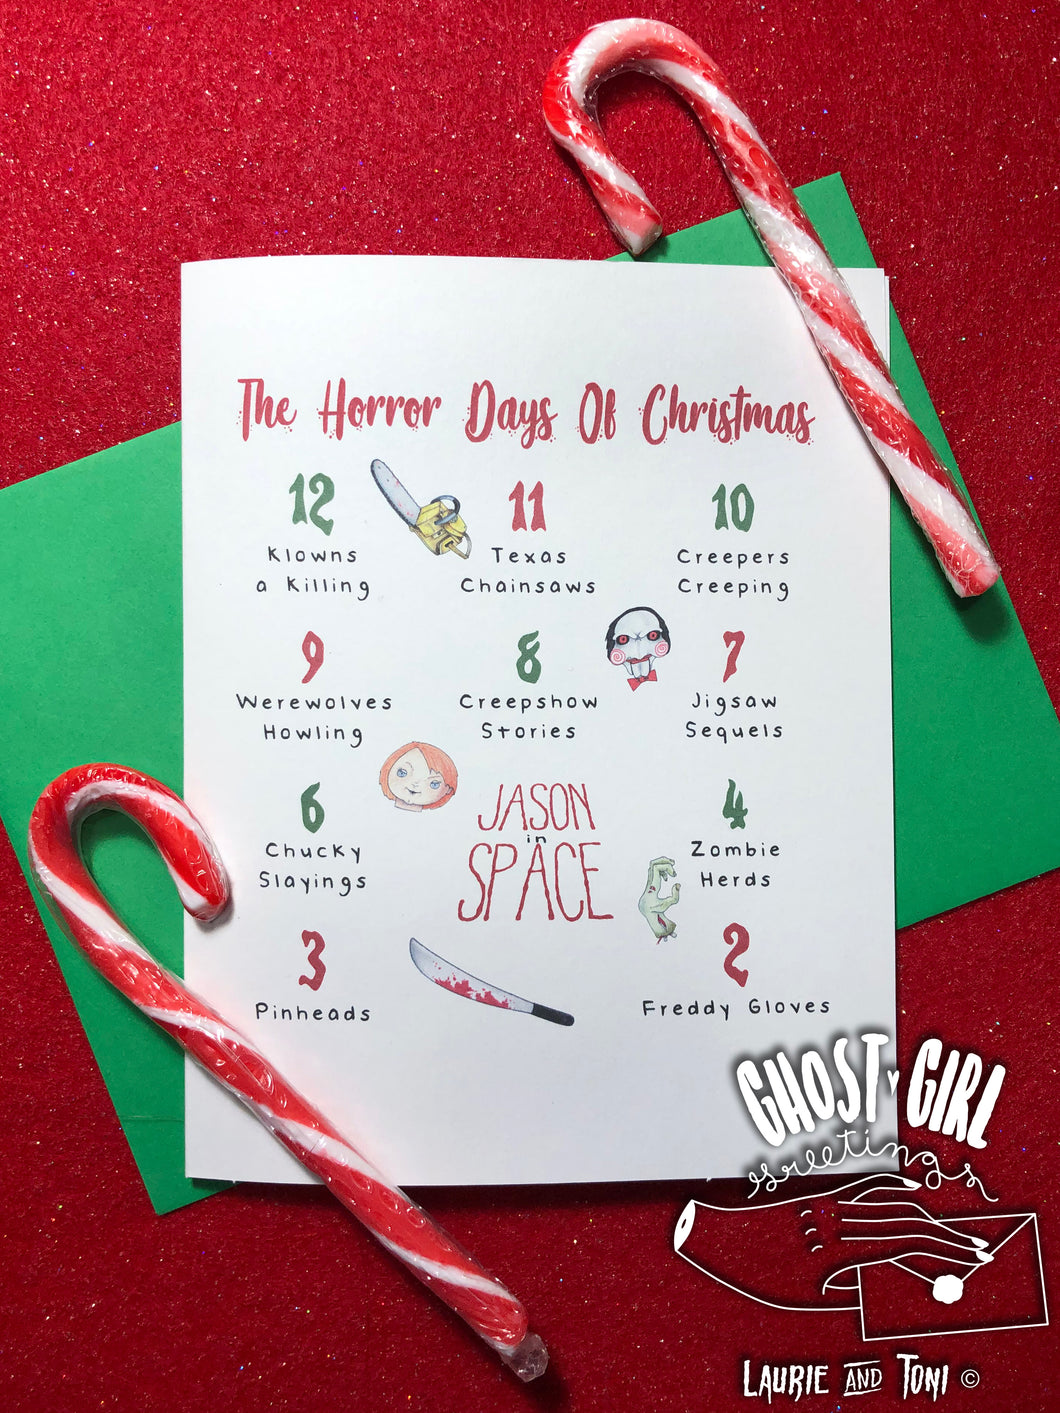 12 Horror Days of Christmas